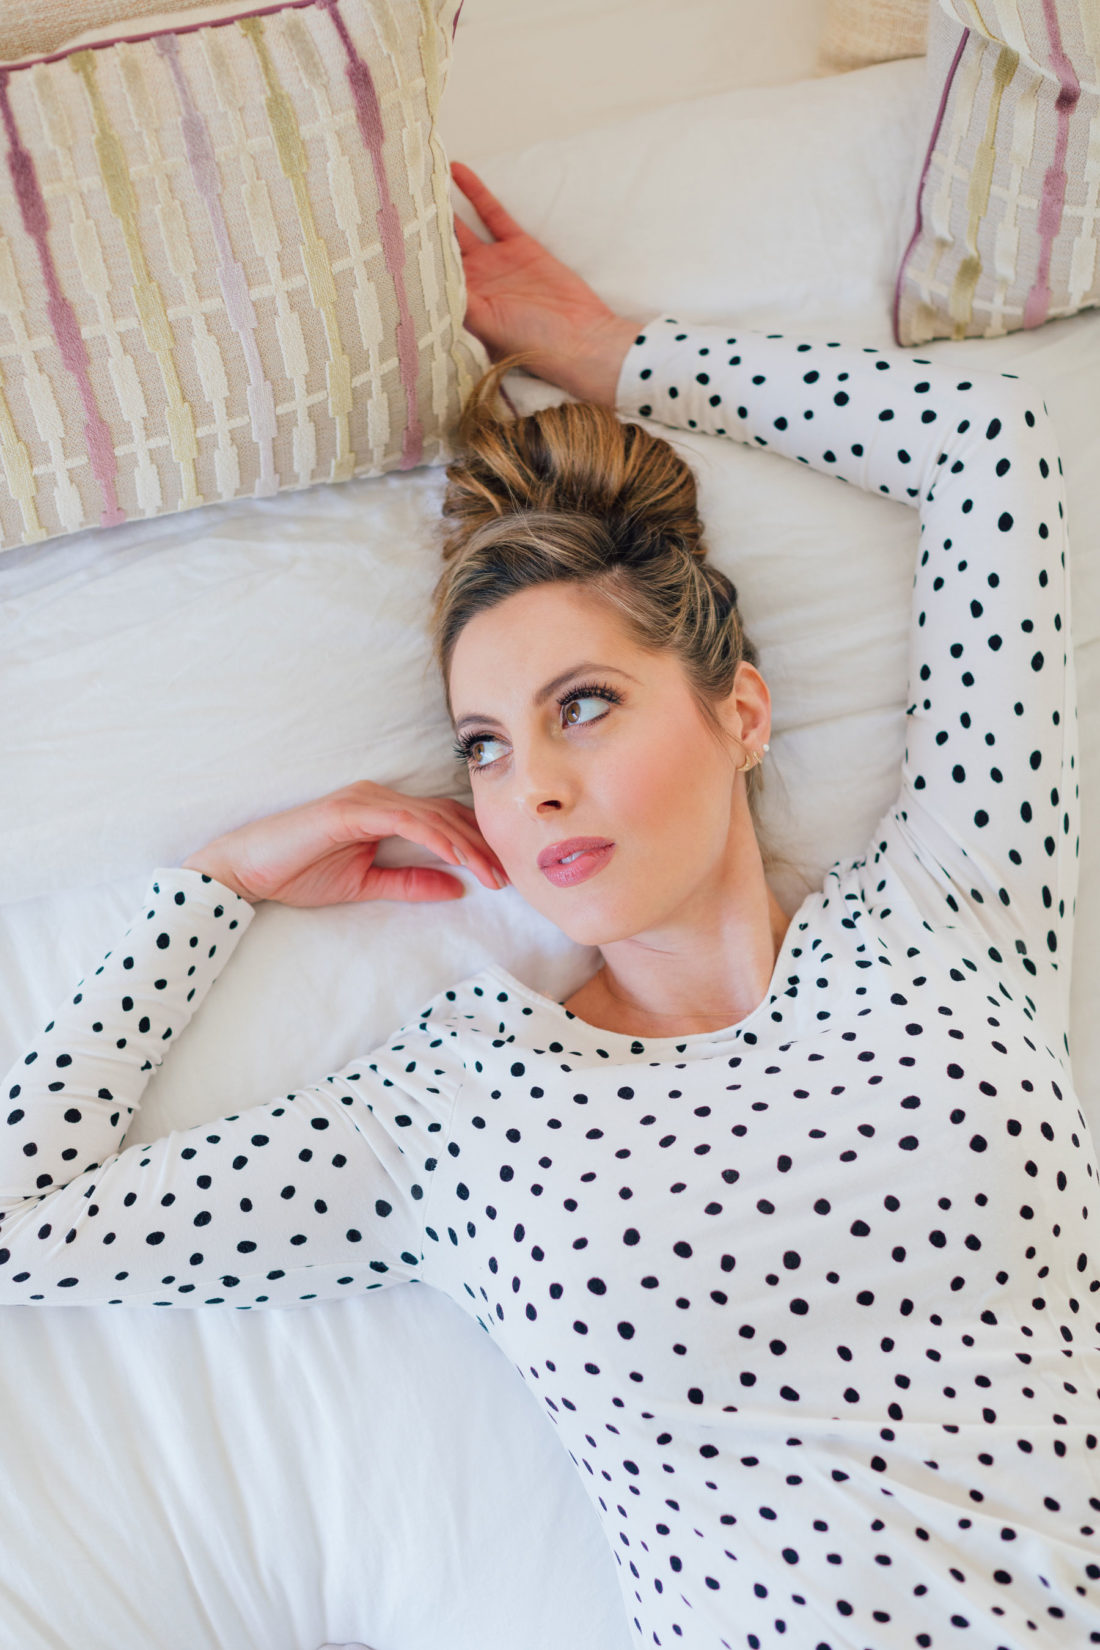 Eva Amurri discusses the different wellness modalities she's tried, and what she's found most helpful.